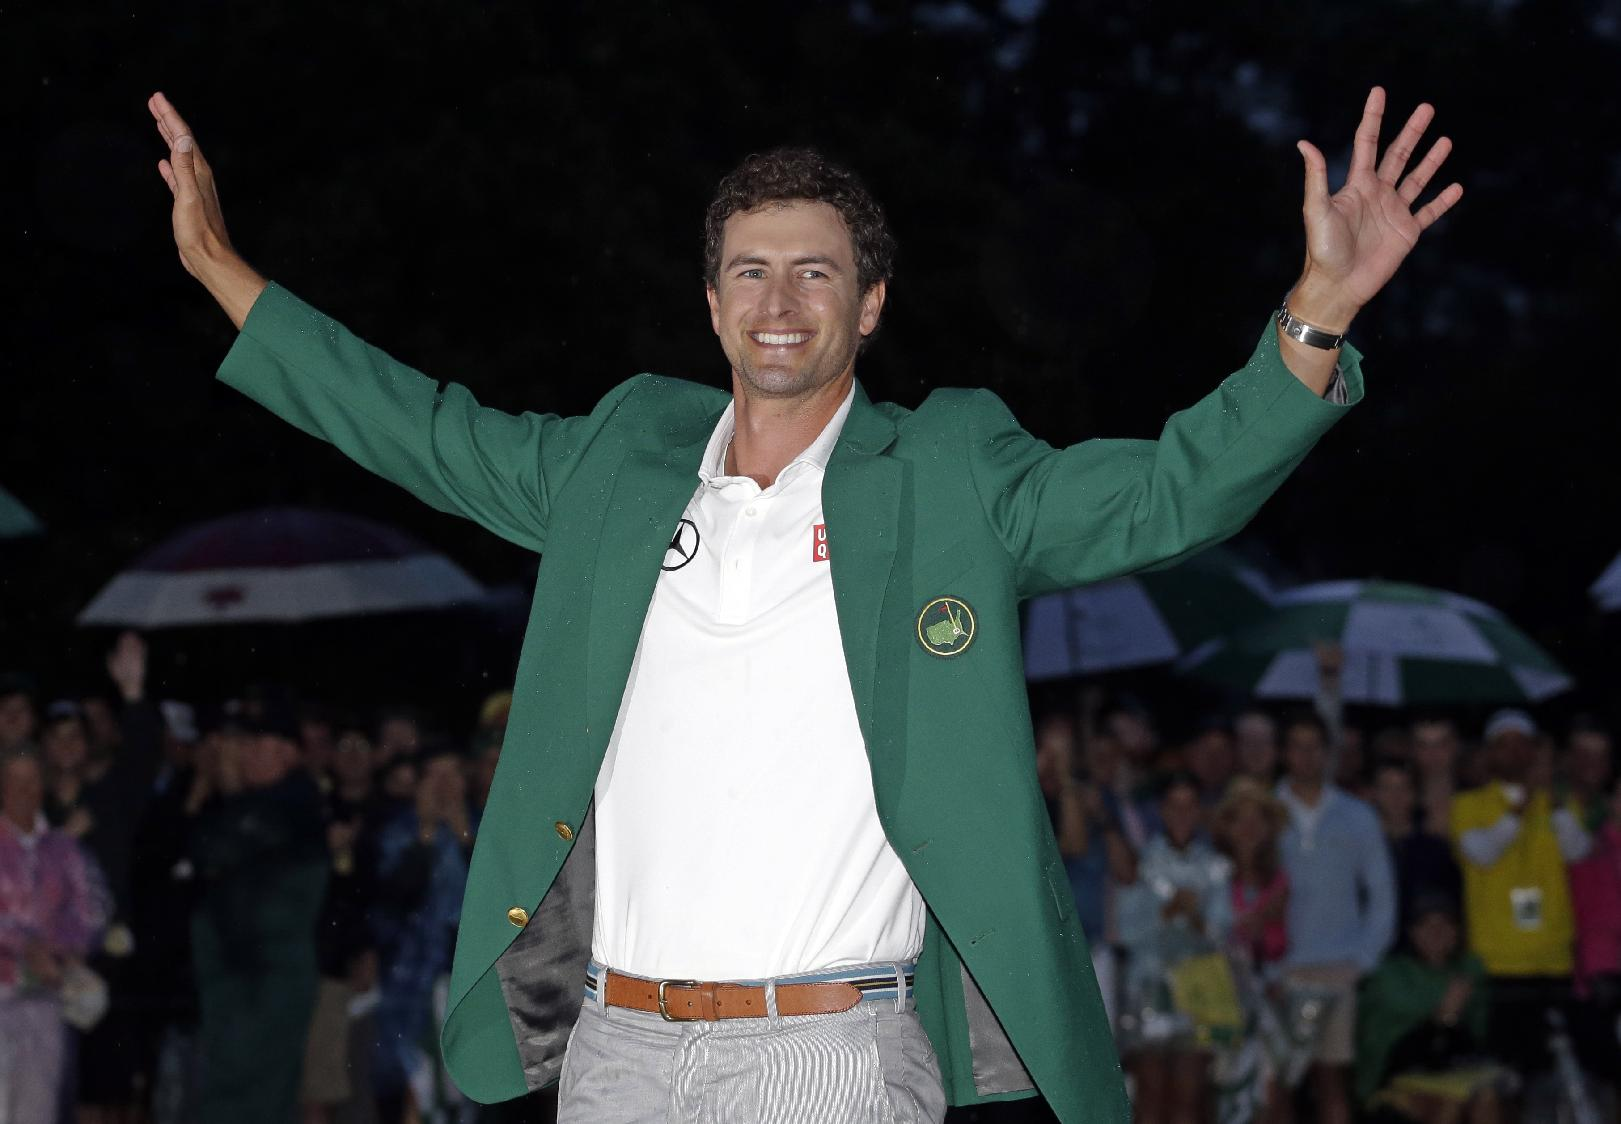 In this April 14, 2013 file photo, Adam Scott, of Australia, celebrates with his green jacket after winning the Masters golf tournament in Augusta, Ga. Scott considers his 20-foot birdie putt on the 18th green the signature moment of his career, even if it wasn't the putt that made him the first Australian to win the Masters